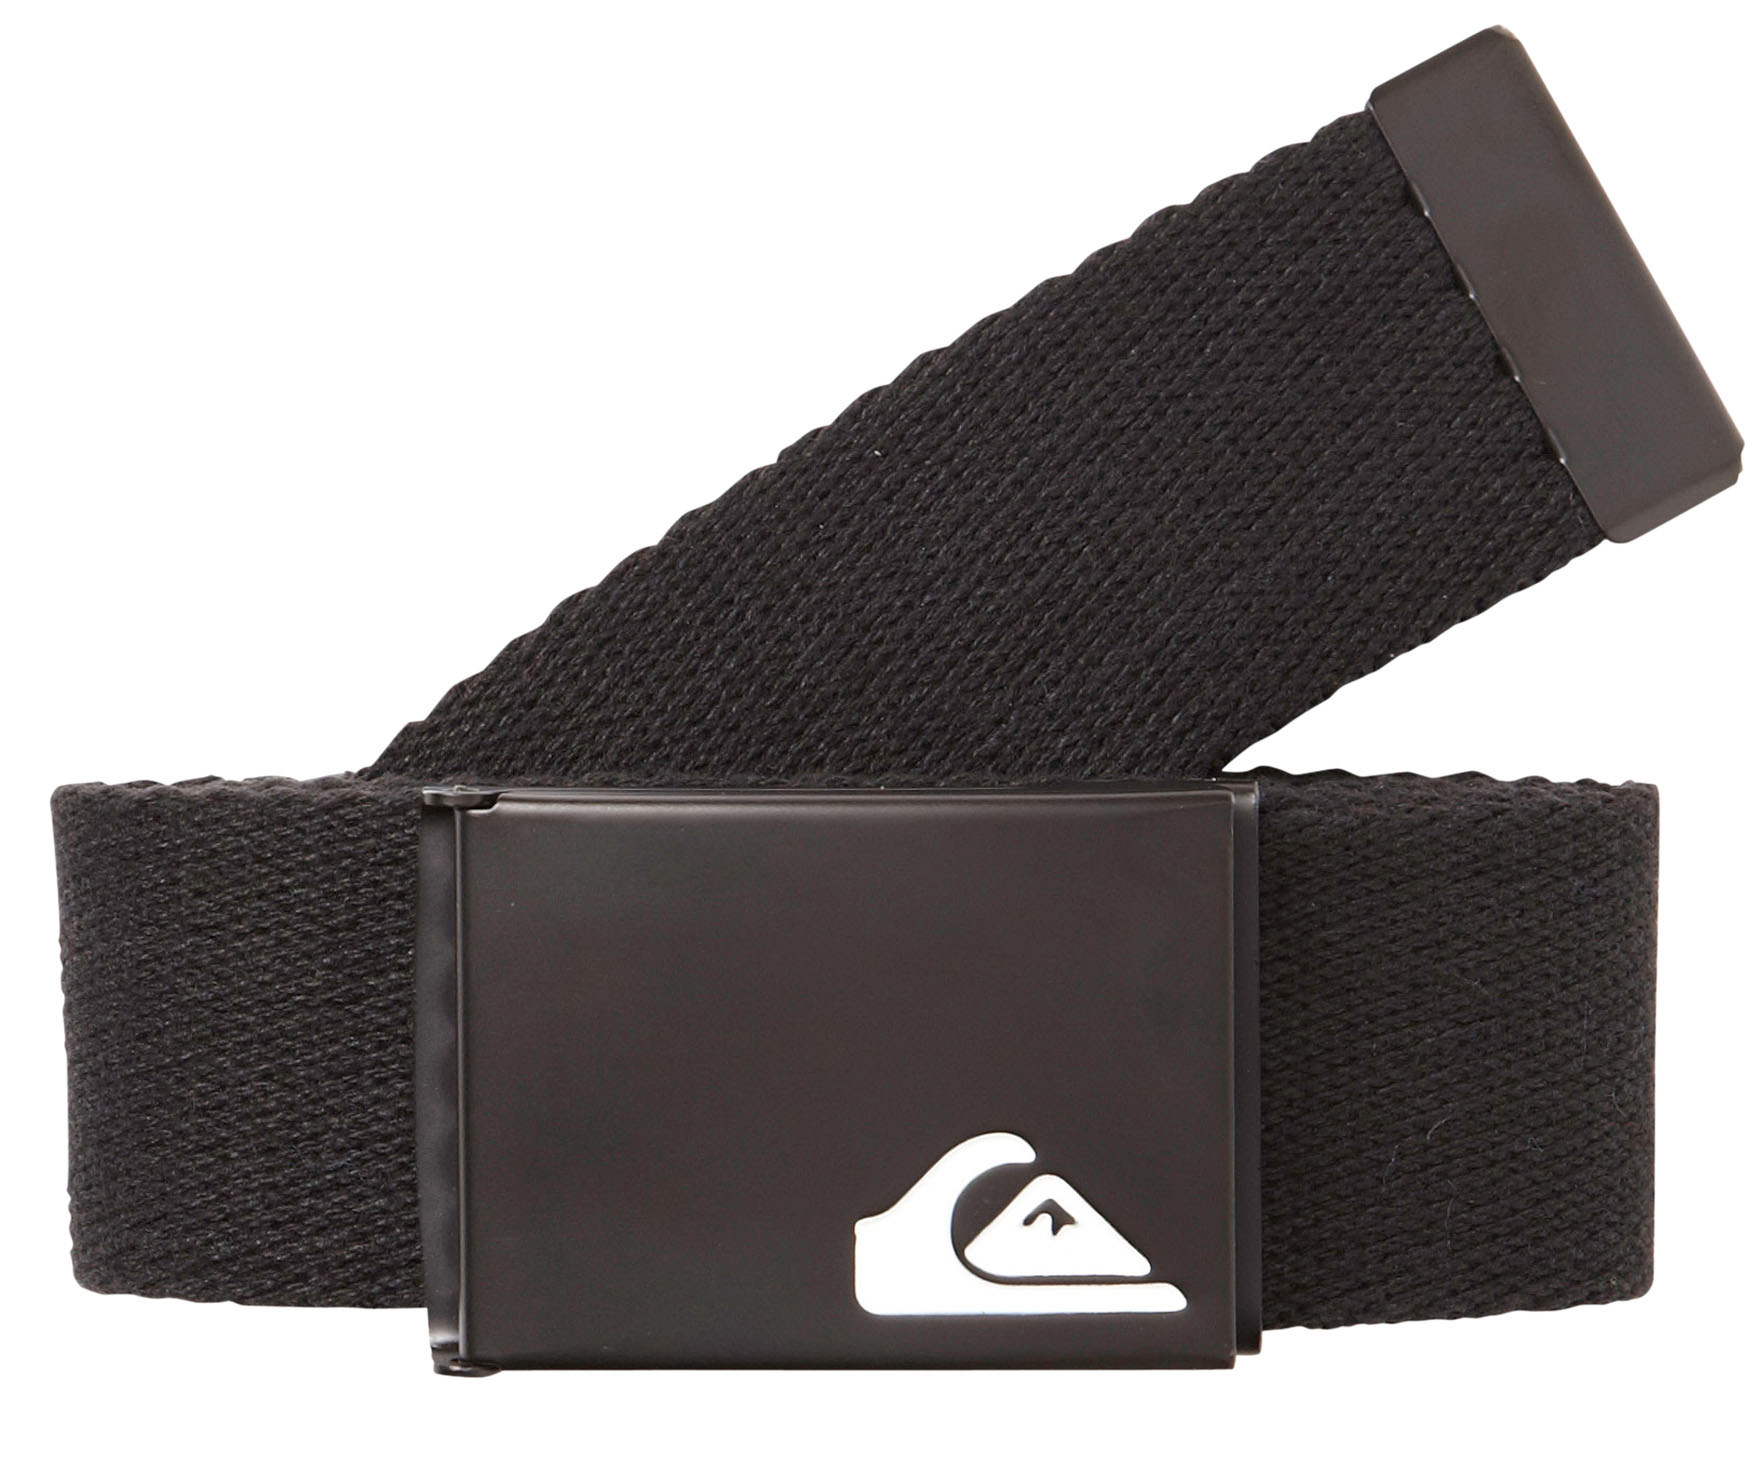 Surf Key Features of the Quiksilver The Jam Belt: 100% Cotton 1.5 inch belt with enamel filled embossed mountain wave logo on a black clamp buckle . PFC and CUR will have a 2 color reversible strap. - $12.00